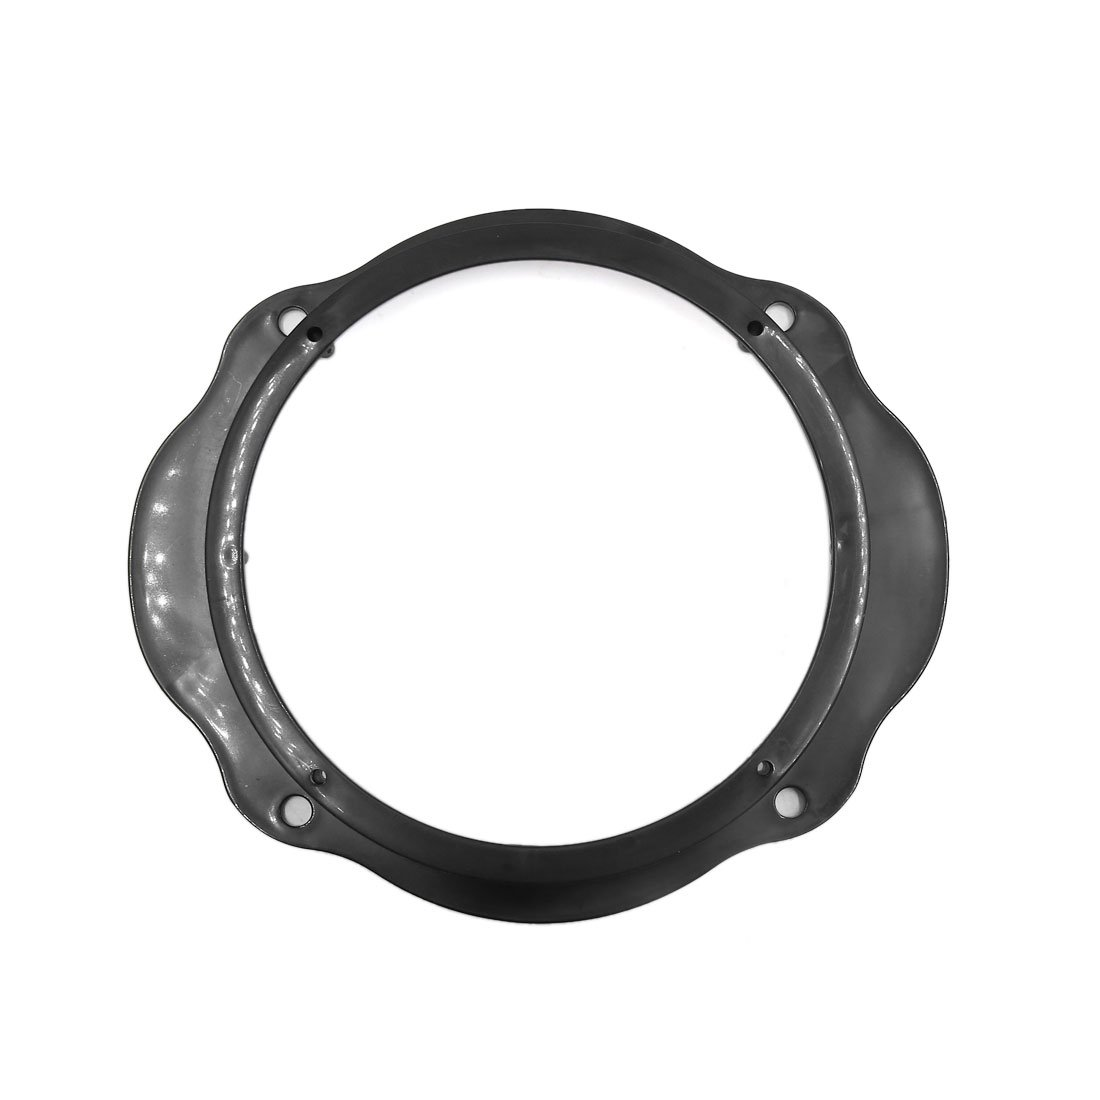 uxcell 2pcs Black 6.5'' Car Stereo Audio Speaker Mounting Spacer Adaptor Rings for Ford by uxcell (Image #5)